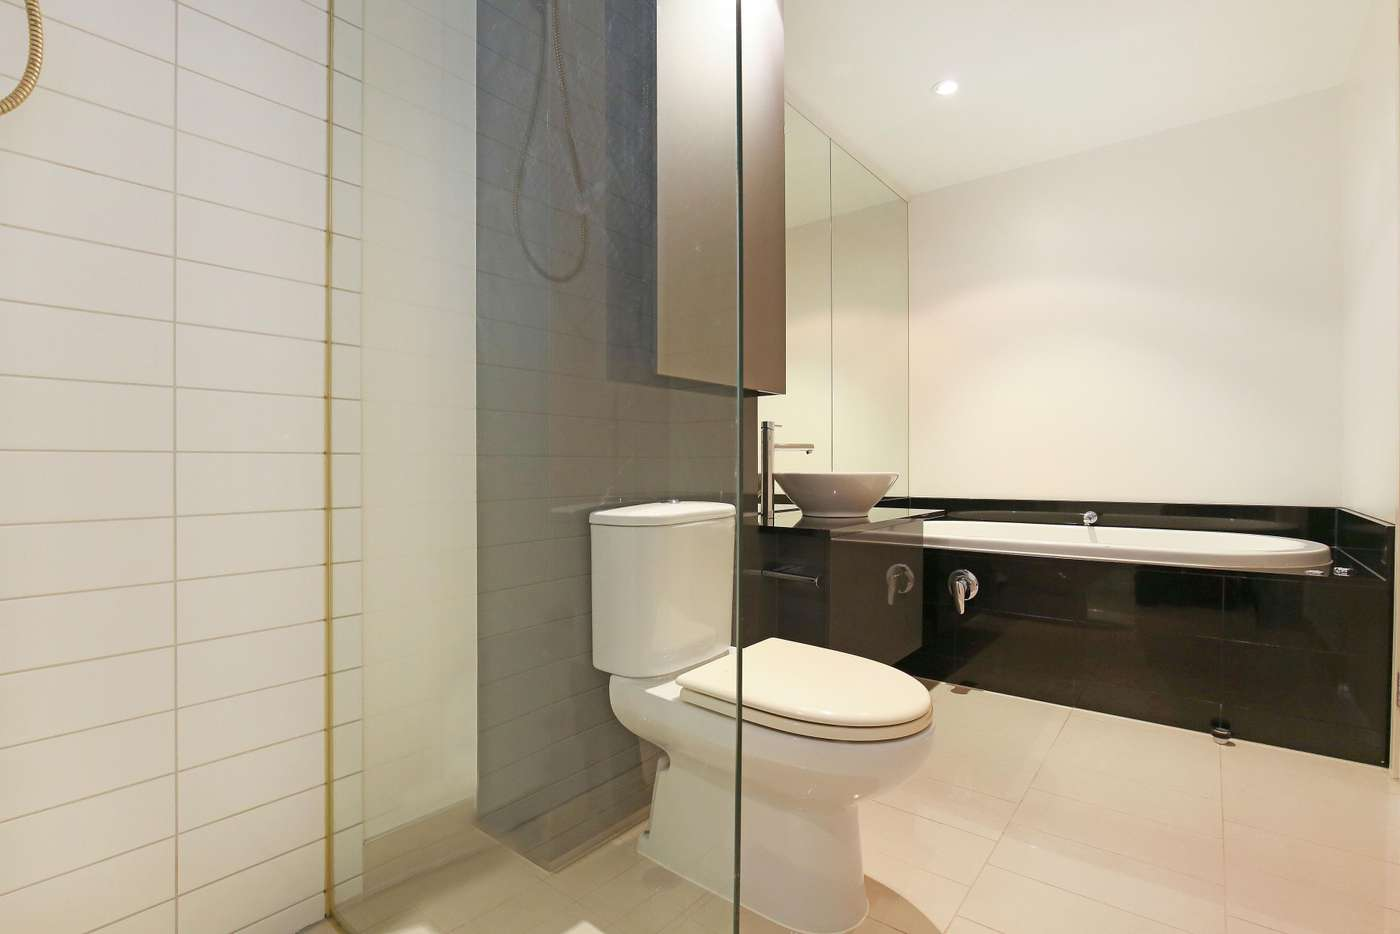 Sixth view of Homely apartment listing, 1504/7 Riverside Quay, Southbank VIC 3006